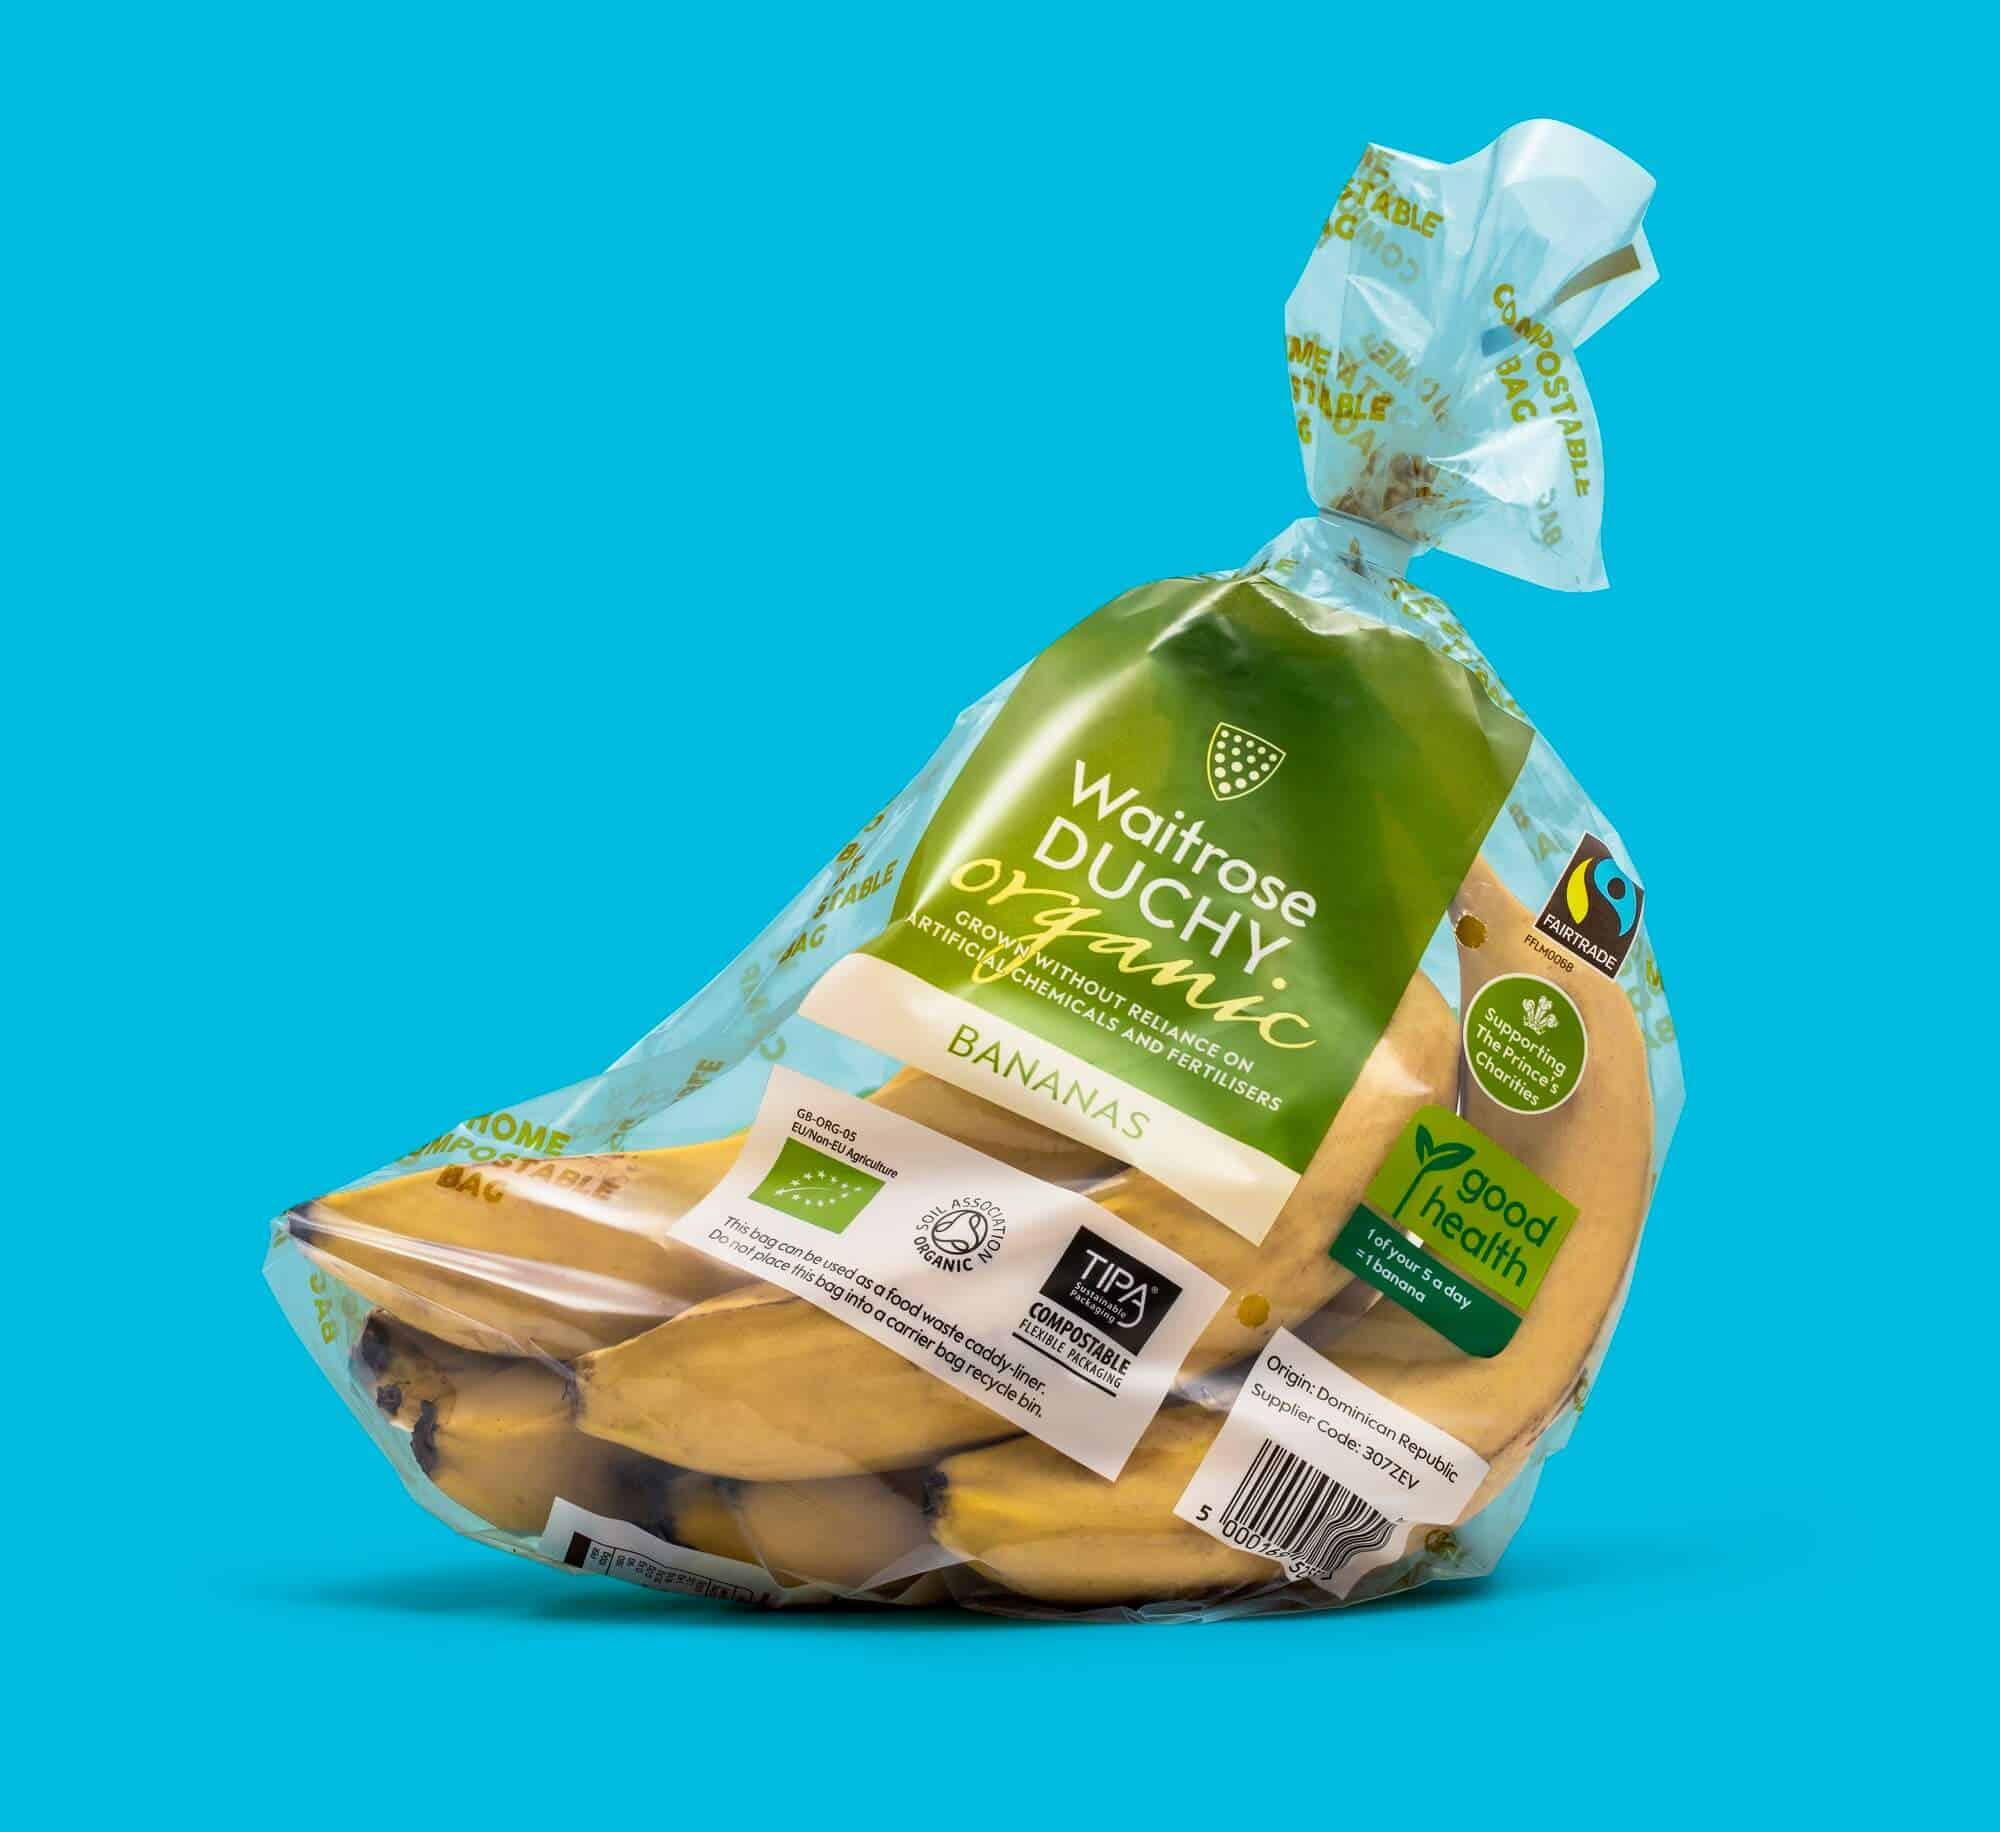 Waitrose Bananas Wicketed compostable Bag